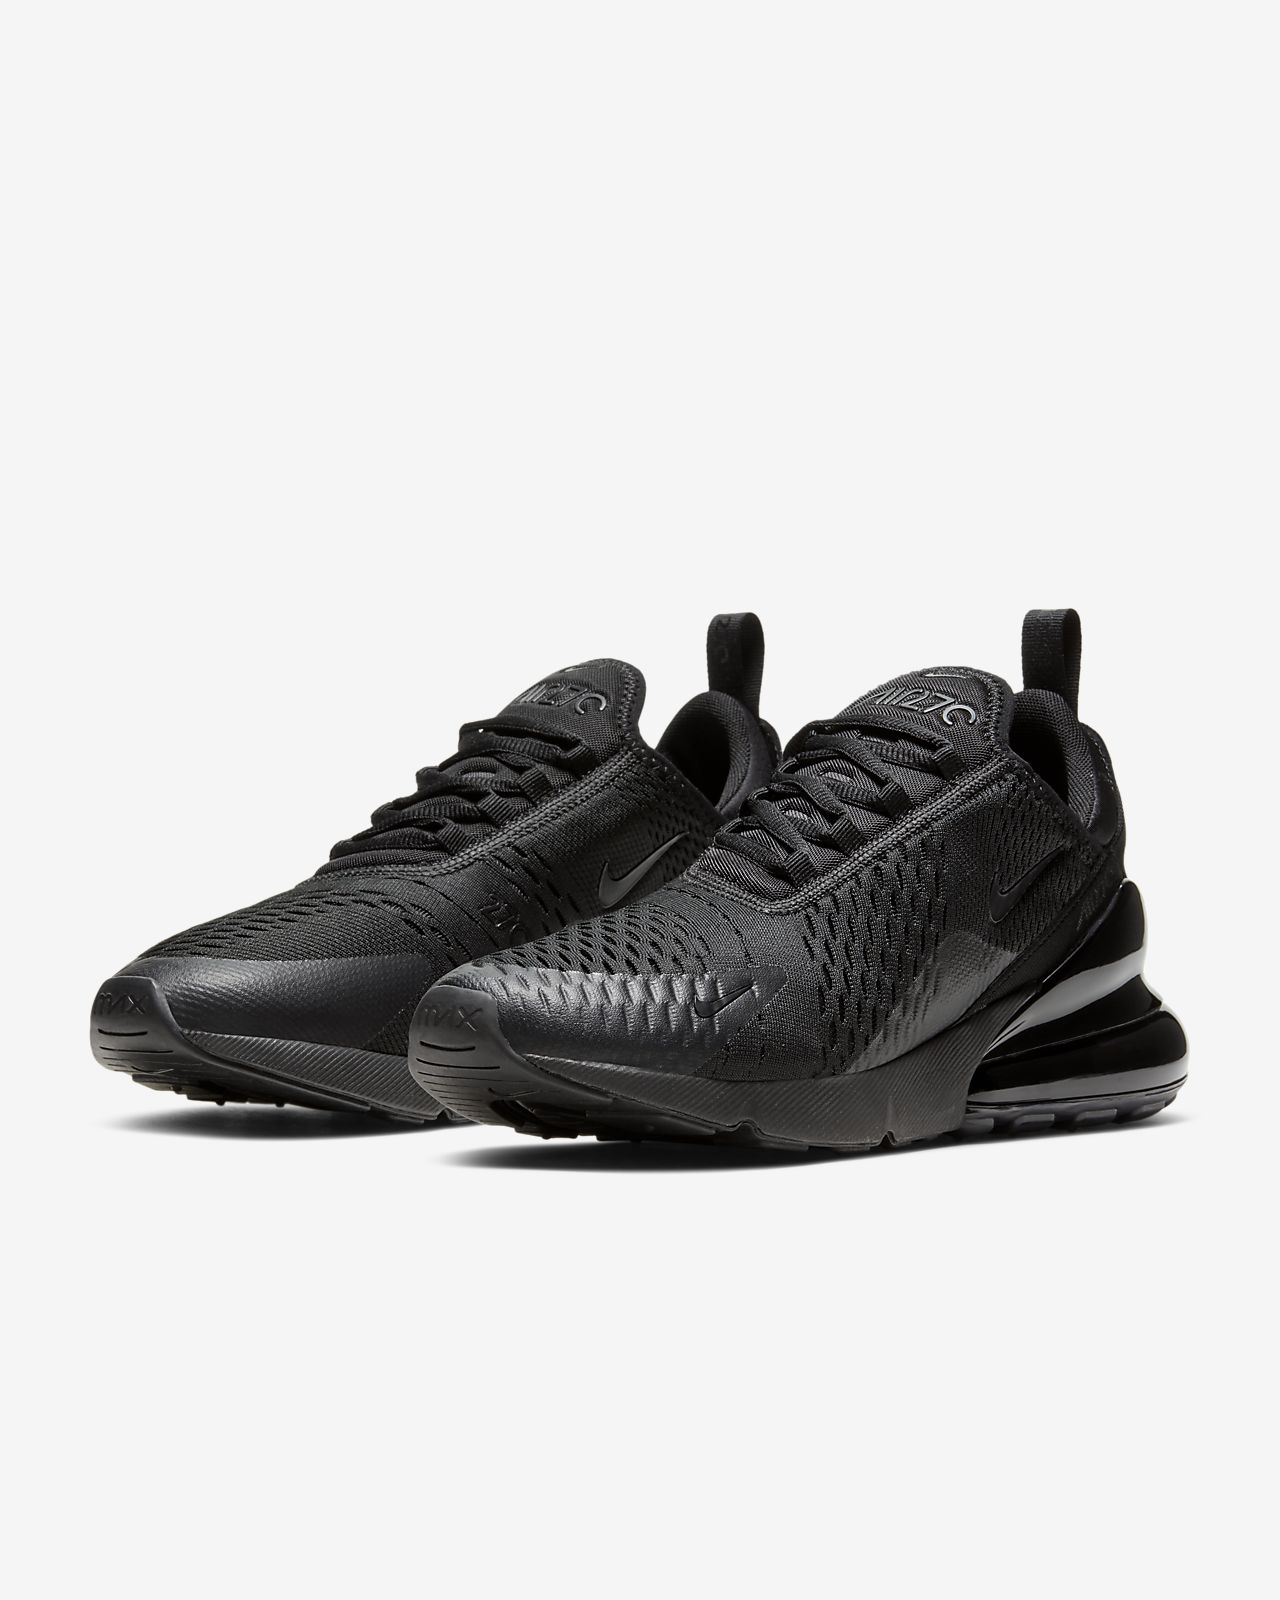 a7a5ecffded7 Nike Air Max 270 Men's Shoe. Nike.com CA